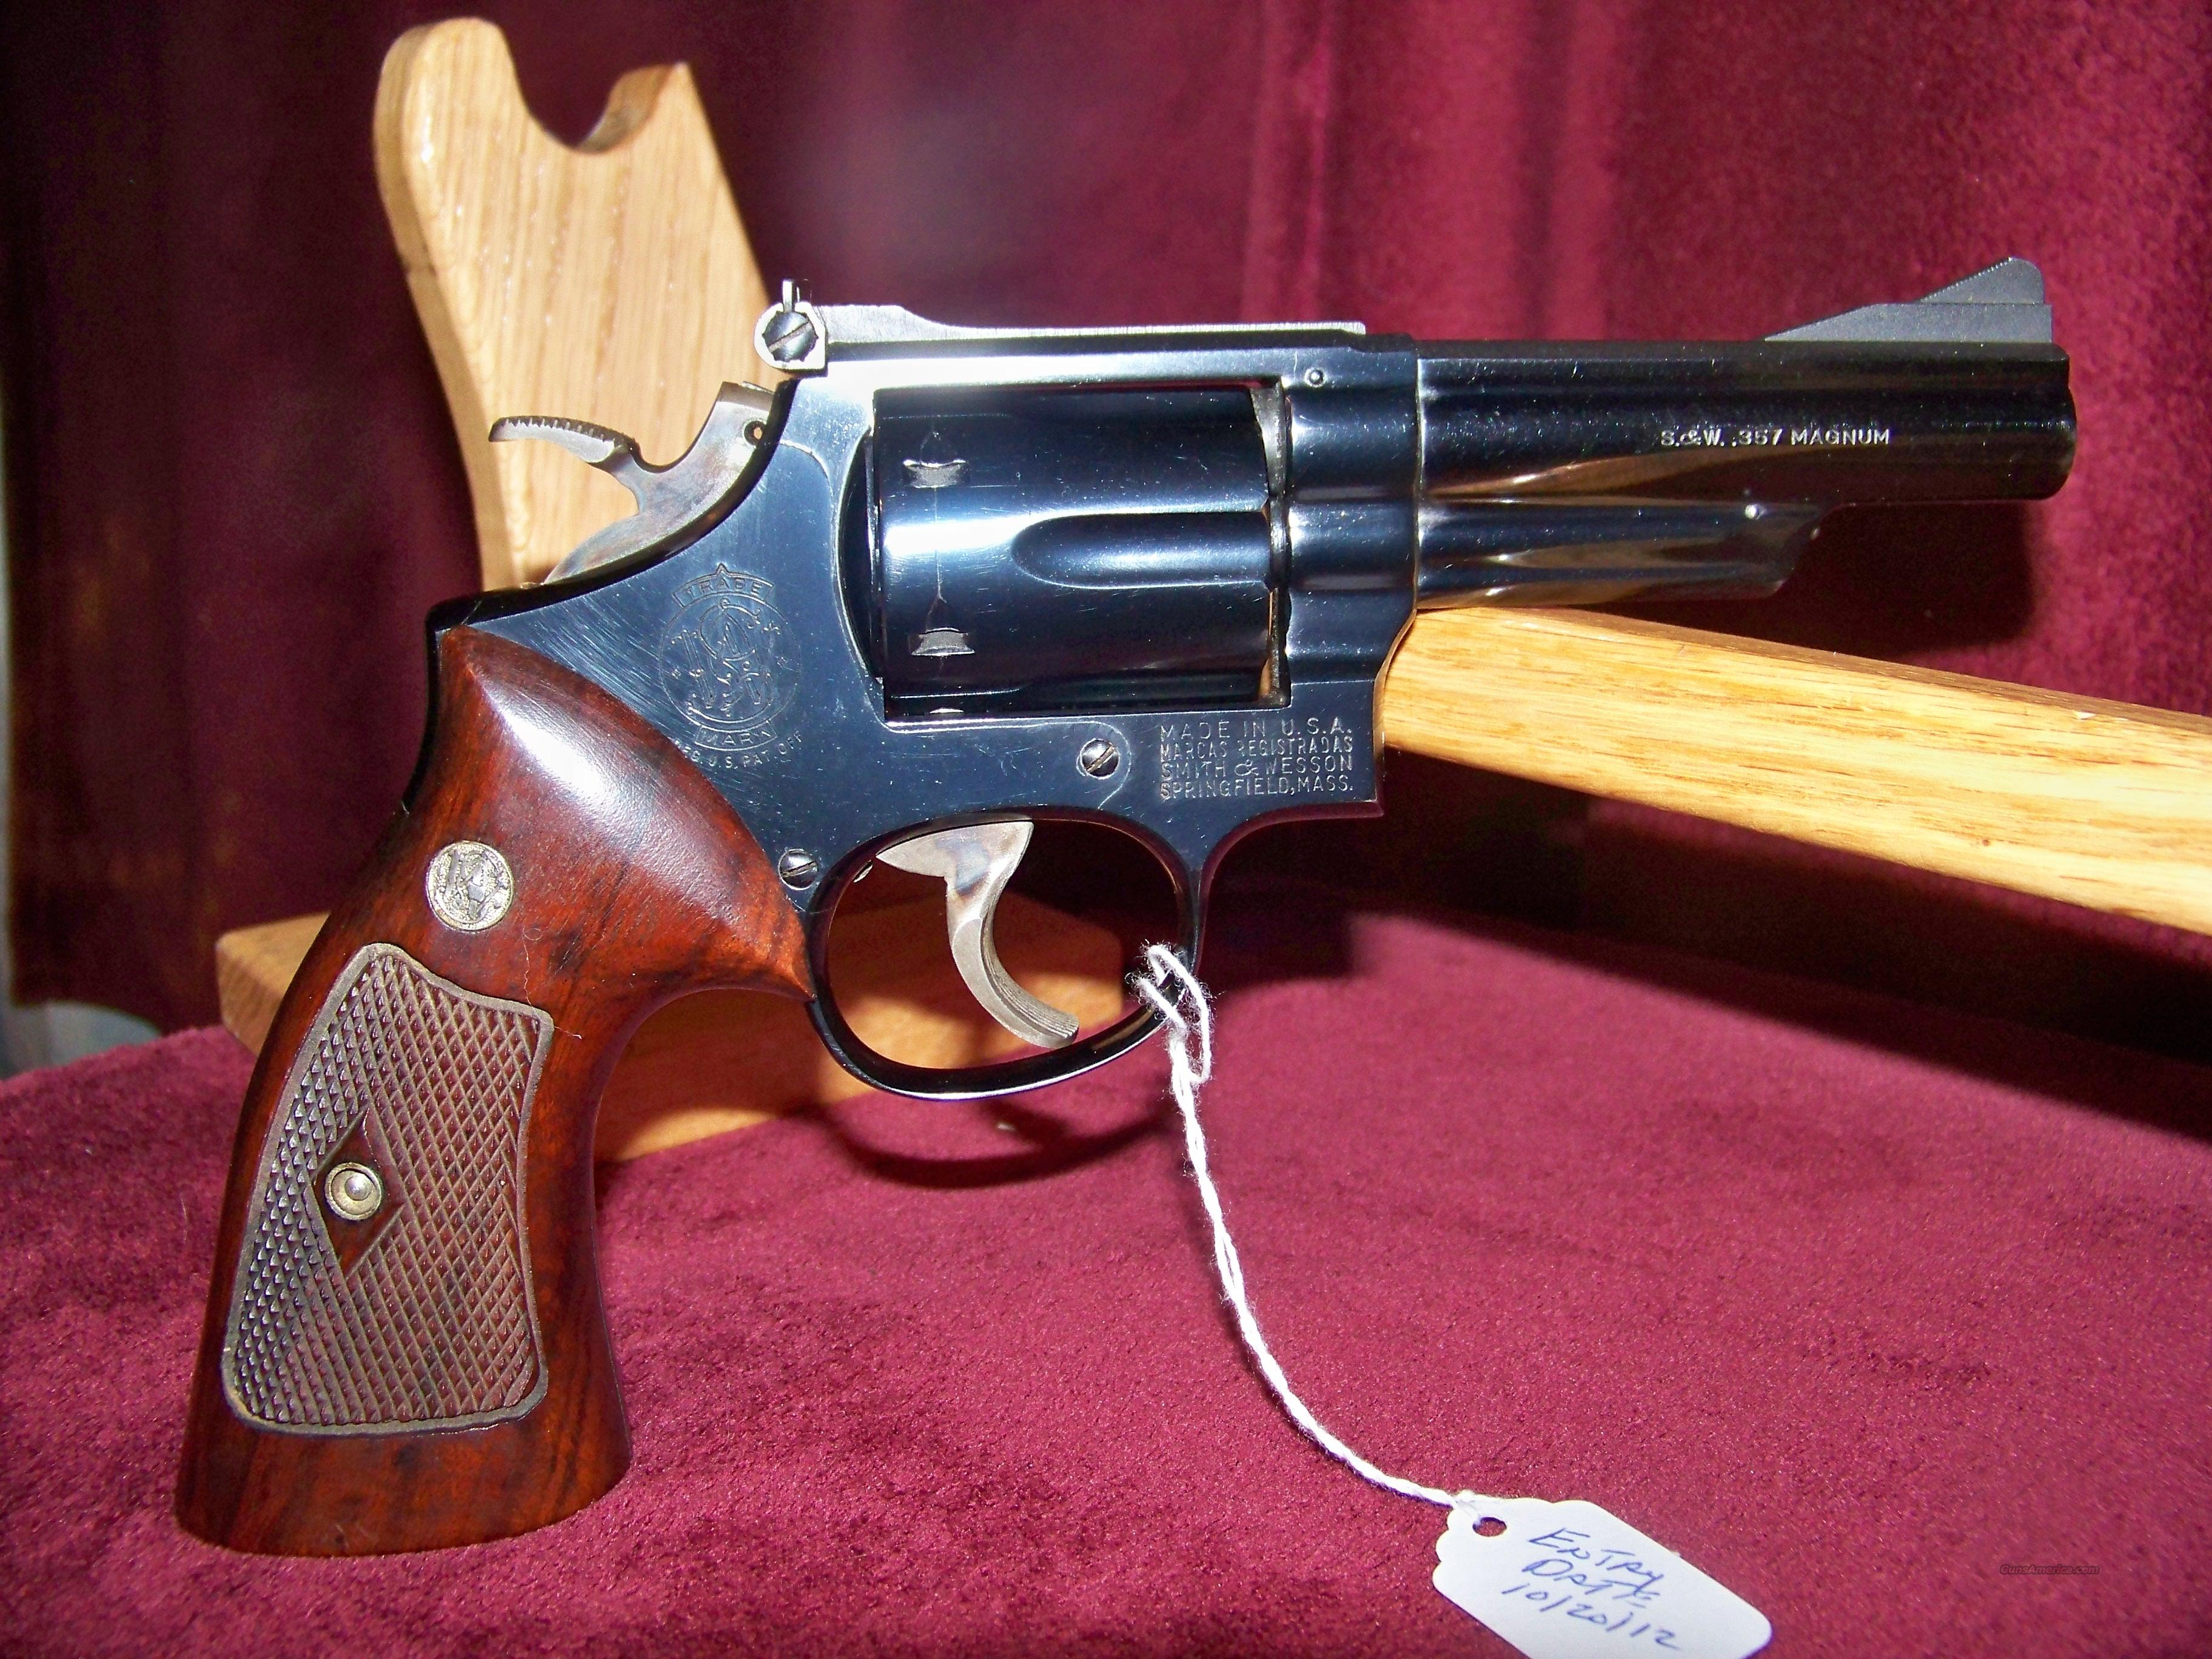 SMITH & WESSON MODEL 19-2  Guns > Pistols > Smith & Wesson Revolvers > Full Frame Revolver